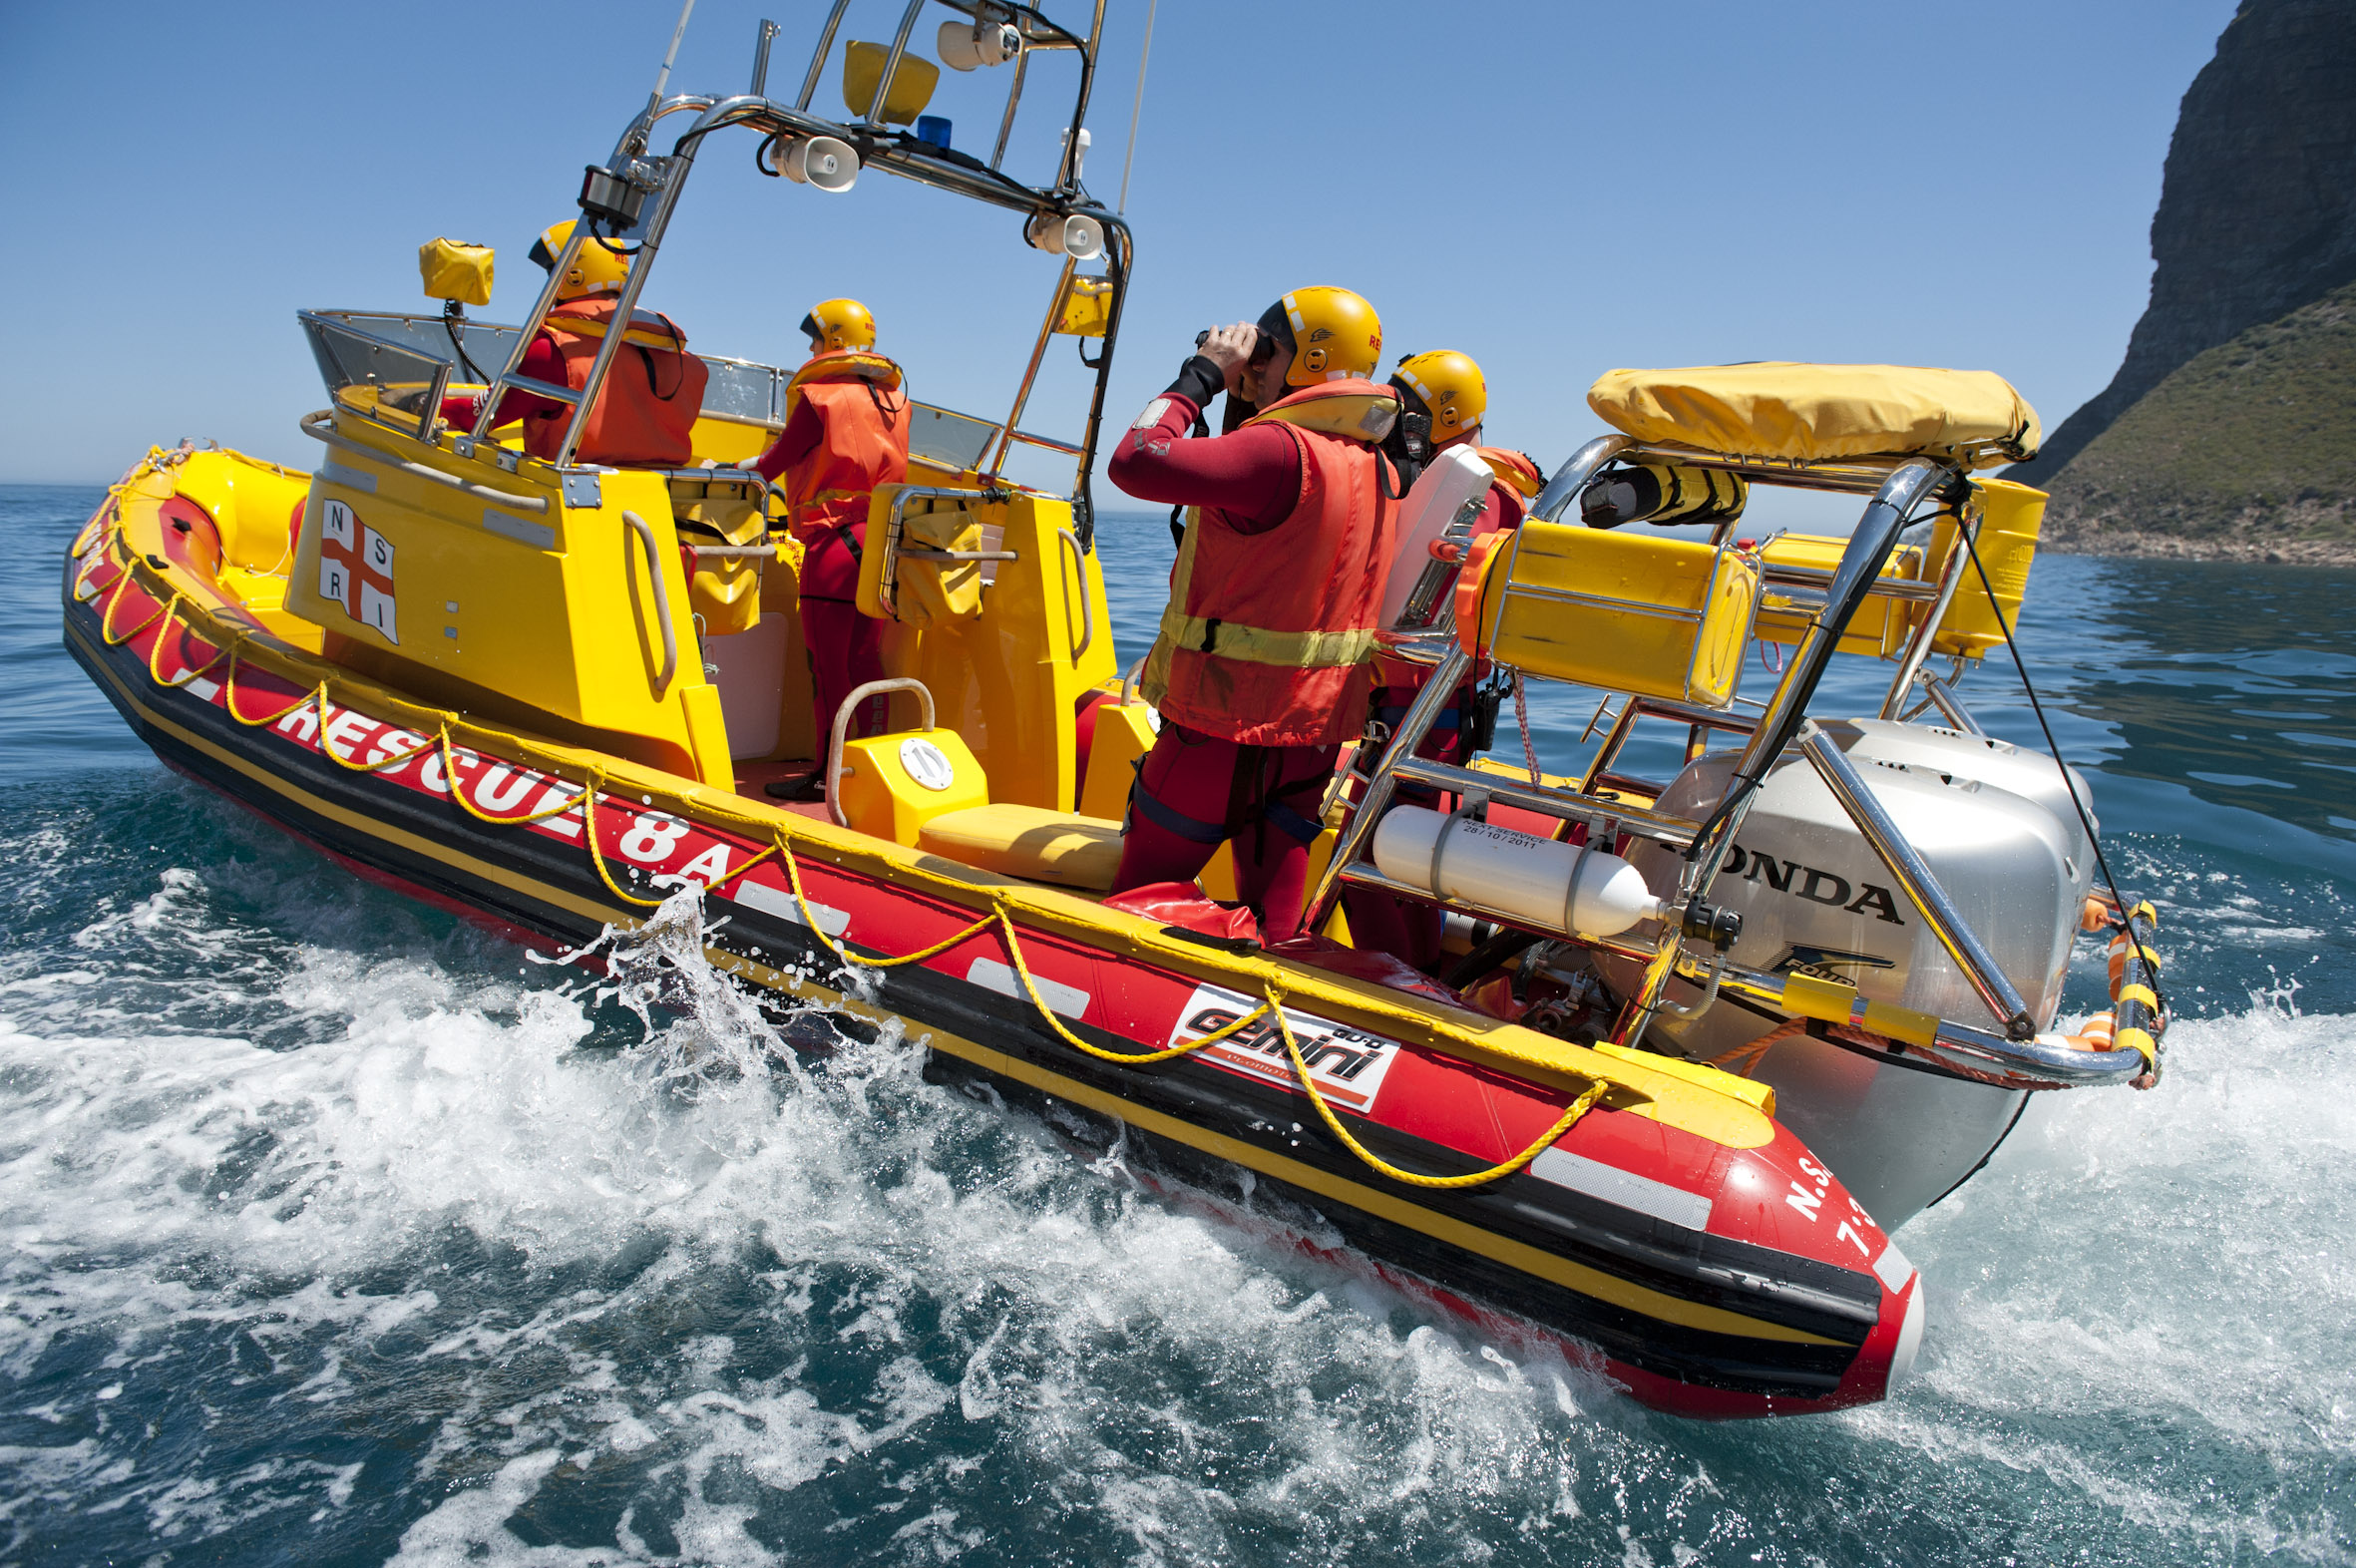 File picture of the Hout Bay rescue boat Albie Mathews